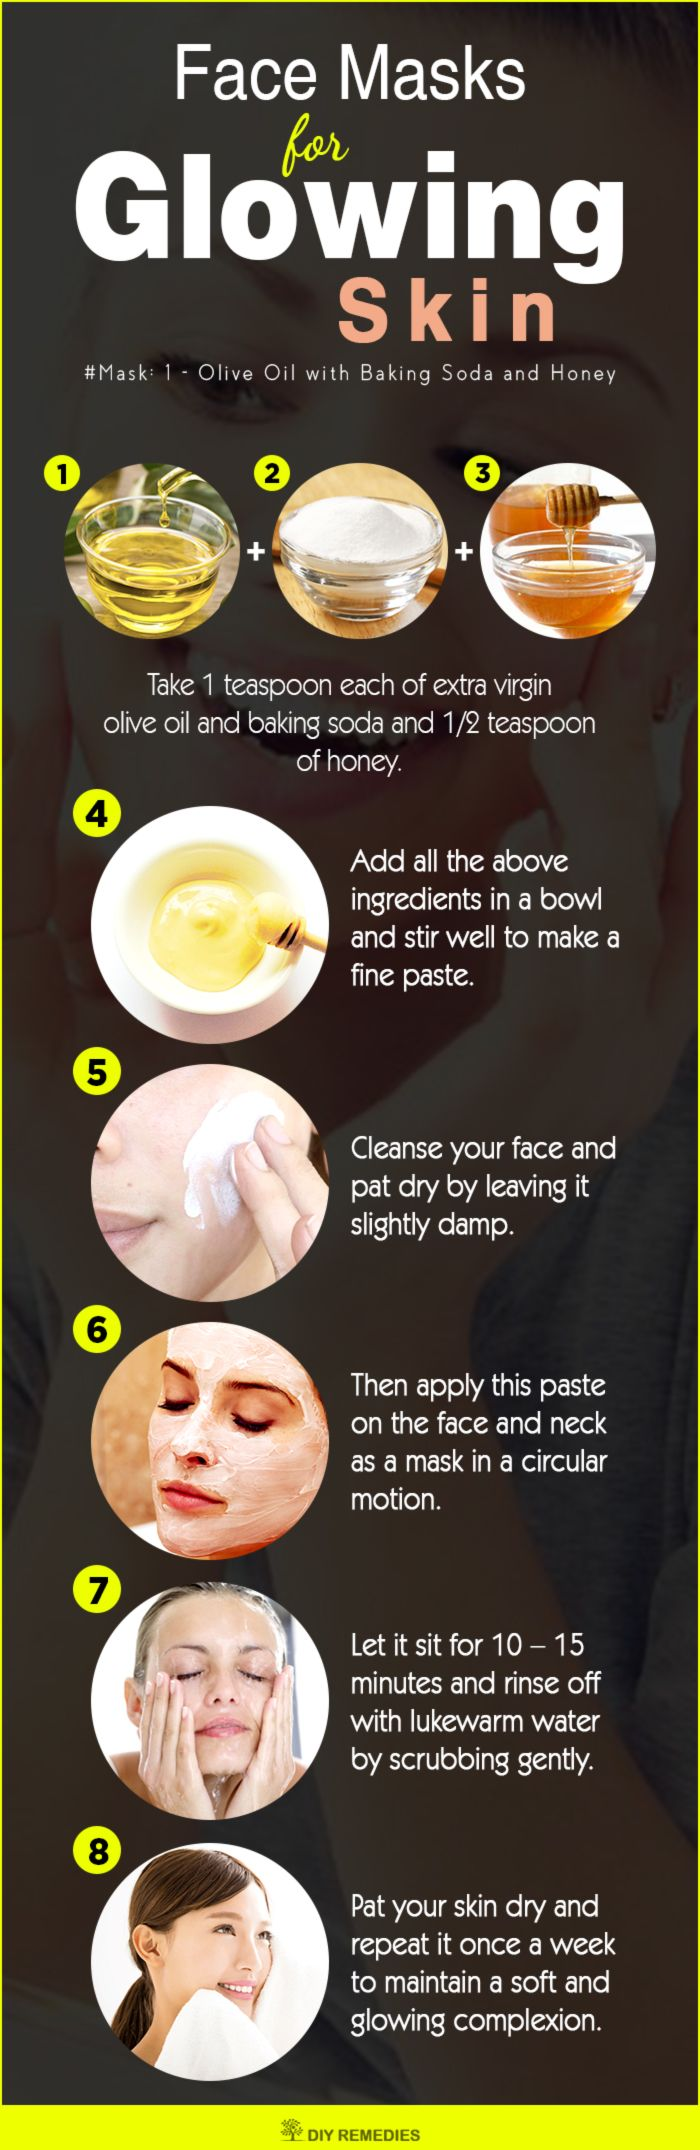 DIY Face Masks for Glowing Skin This face mask is suitable